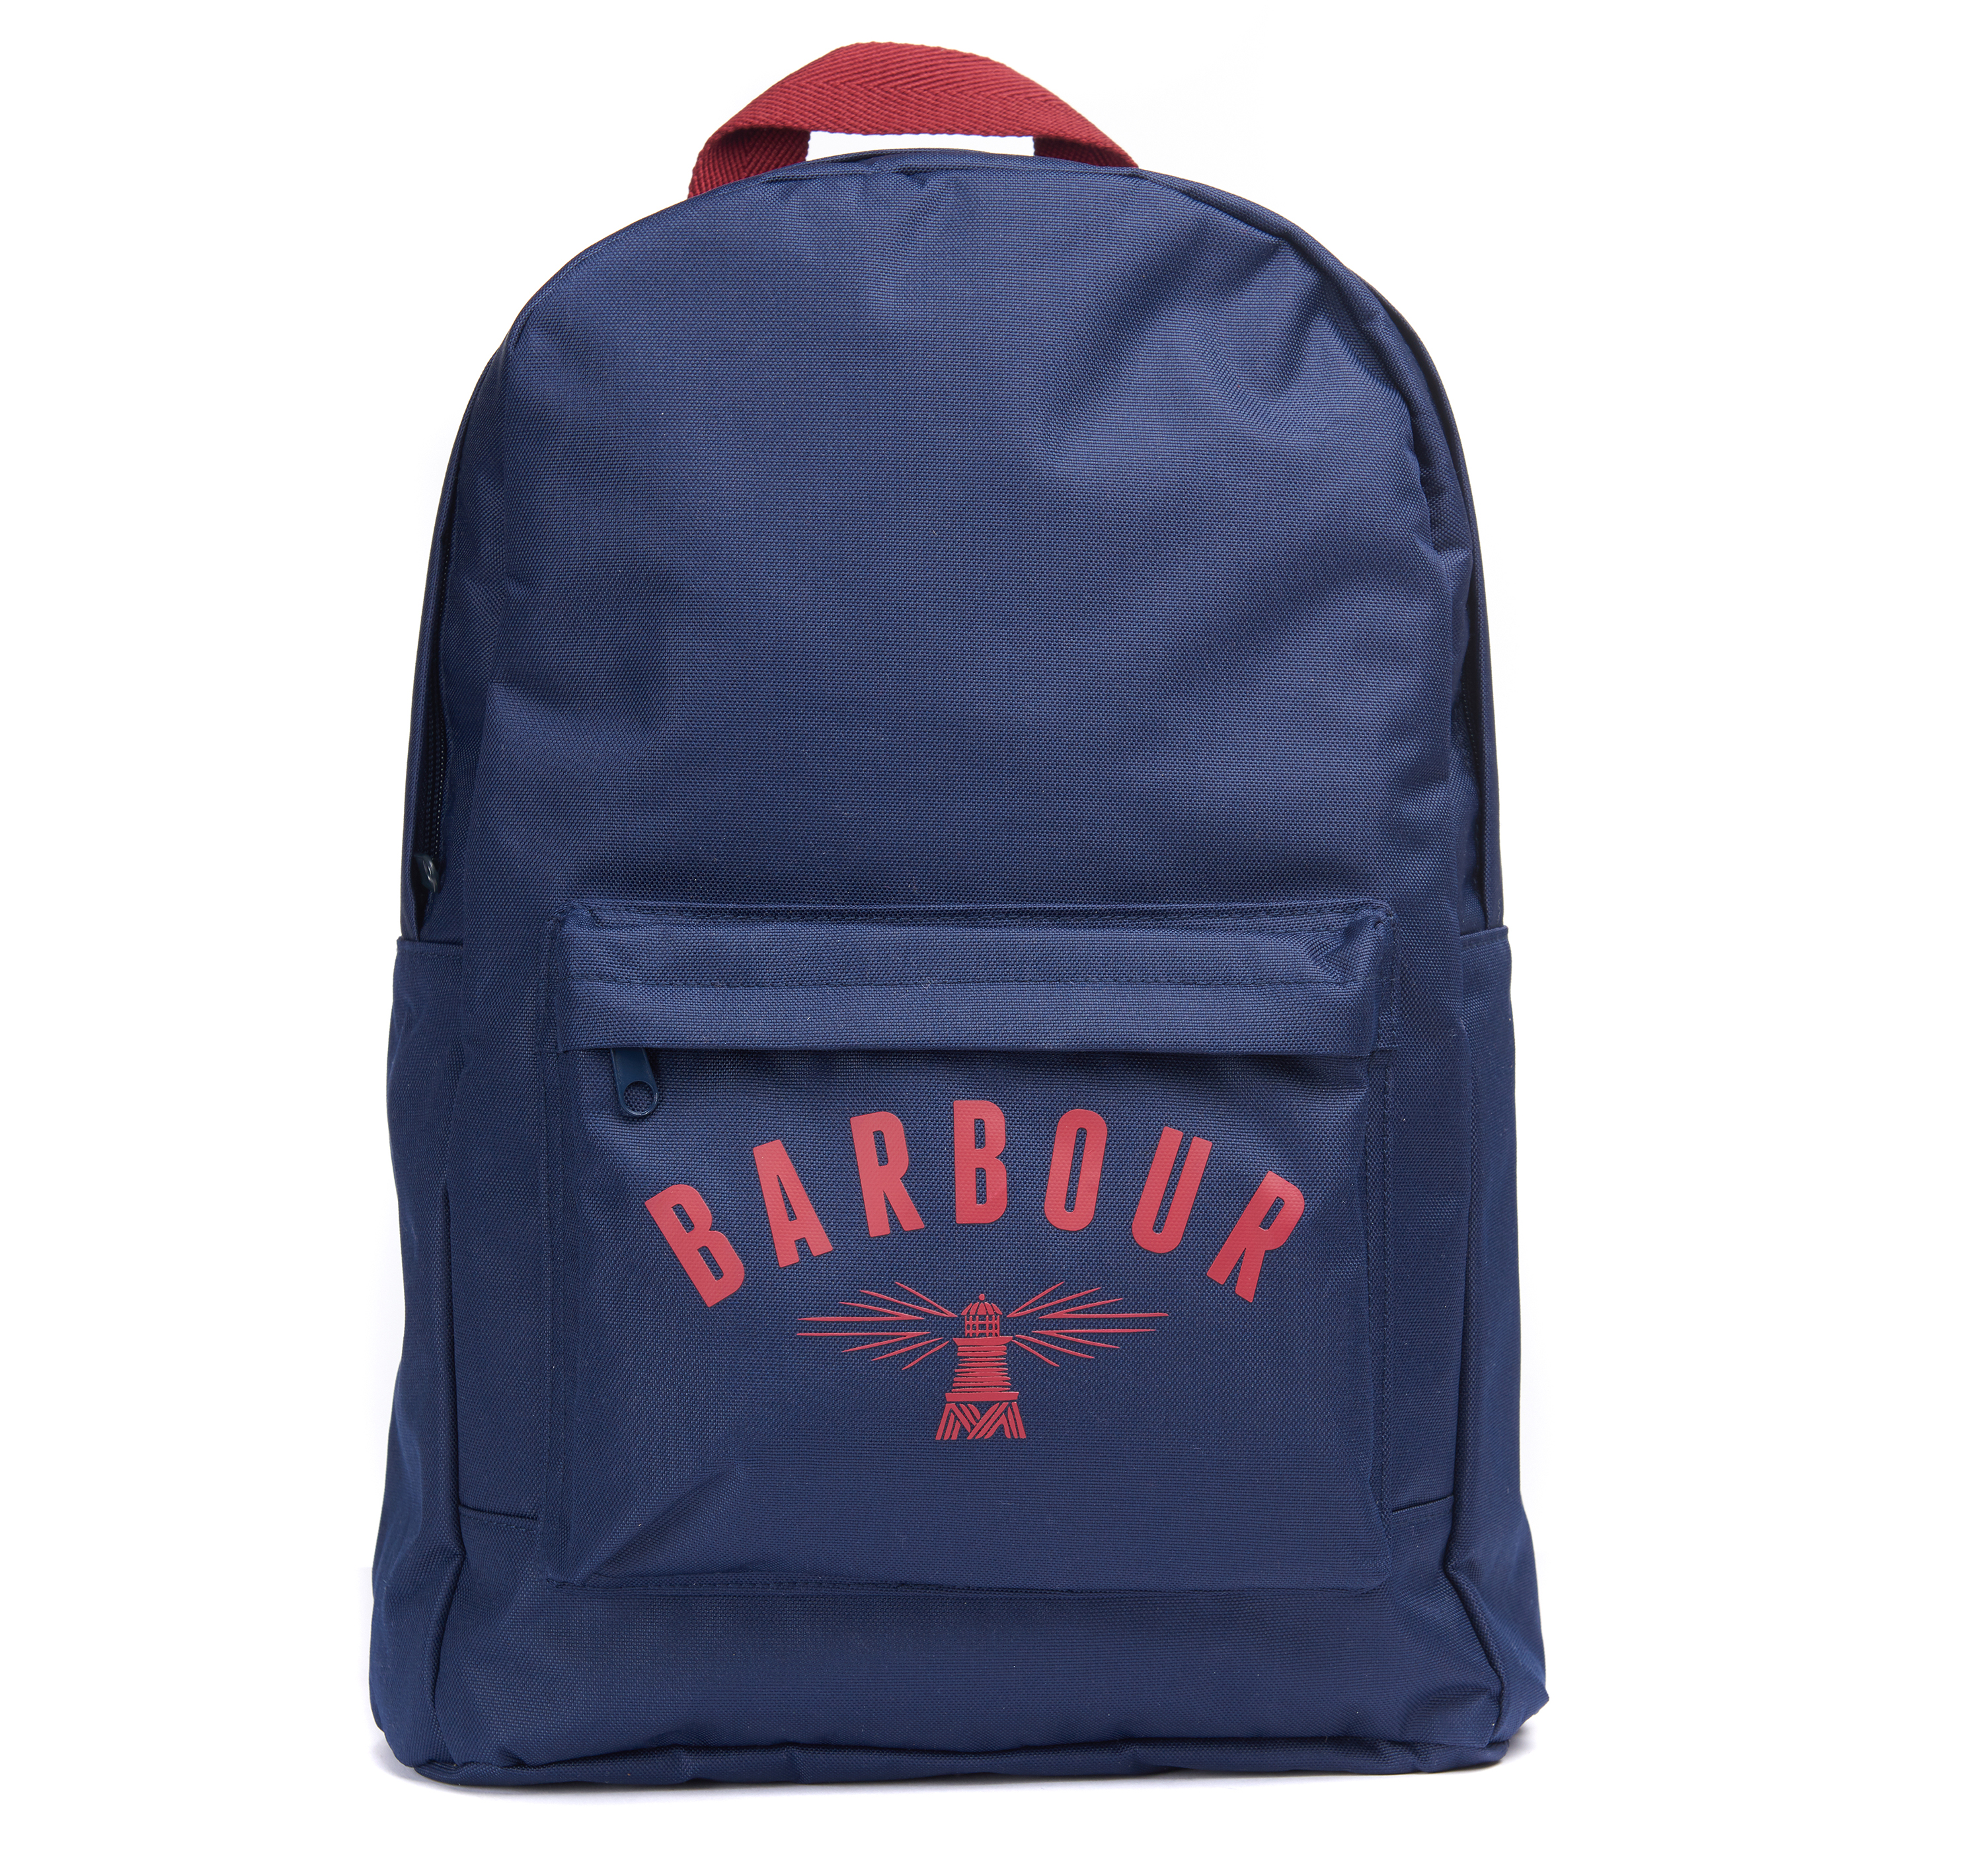 Barbour Hartland Backpack Barbour Lifestyle: From the Beacon collection